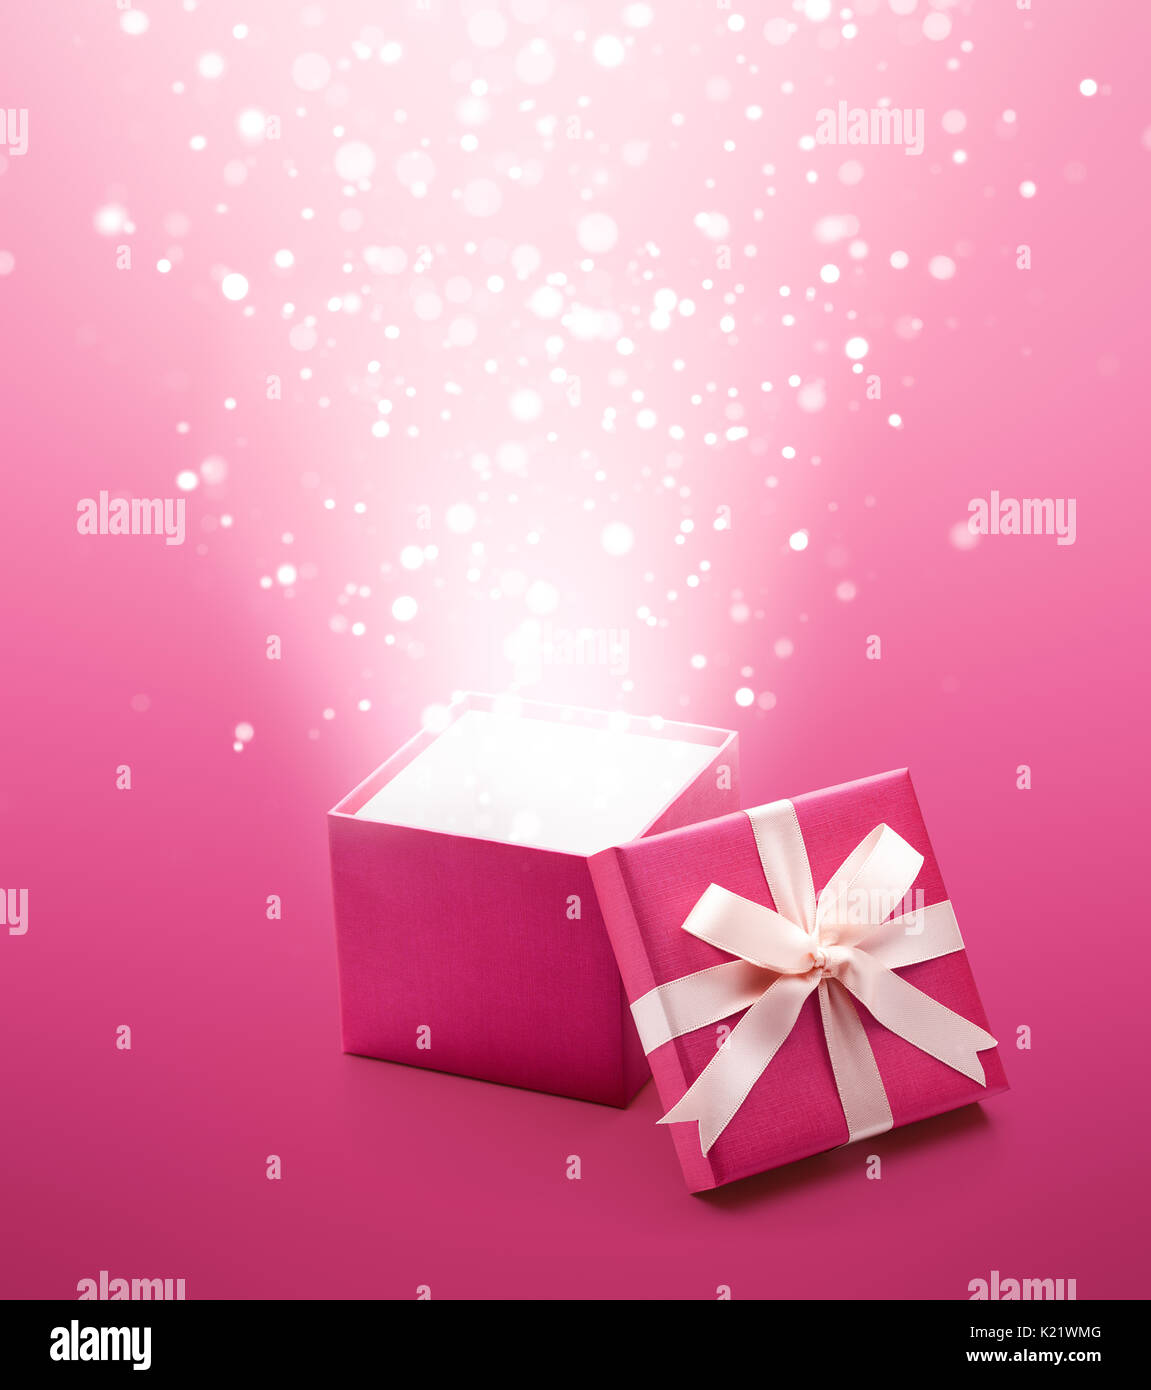 Magical orbs bursting out from pink gift box - Stock Image